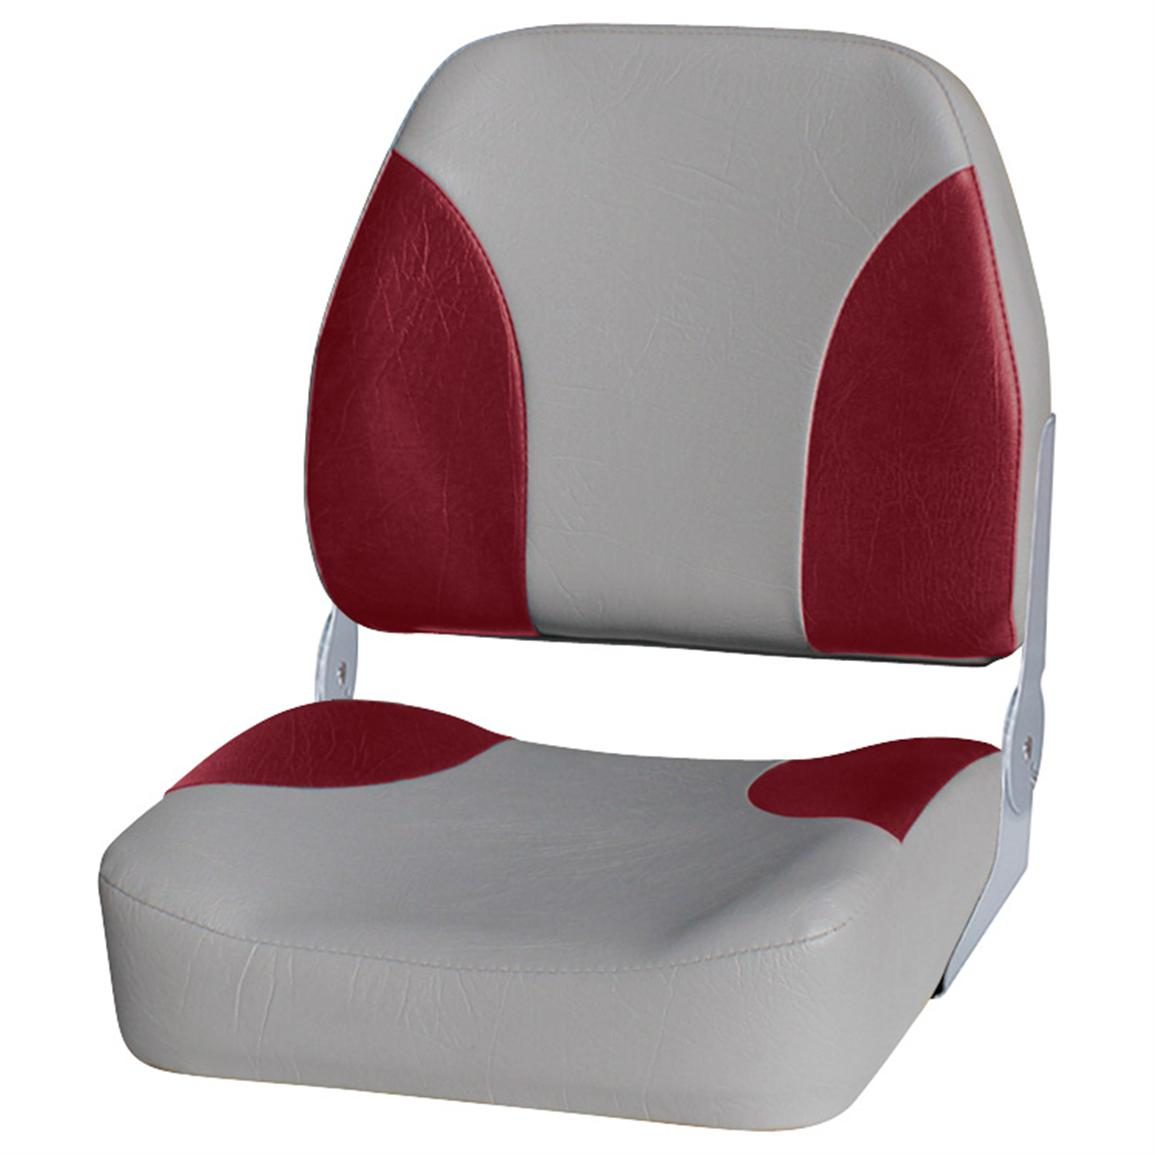 Wise Premium Big Man Fishing Boat Seat, Grey / Red